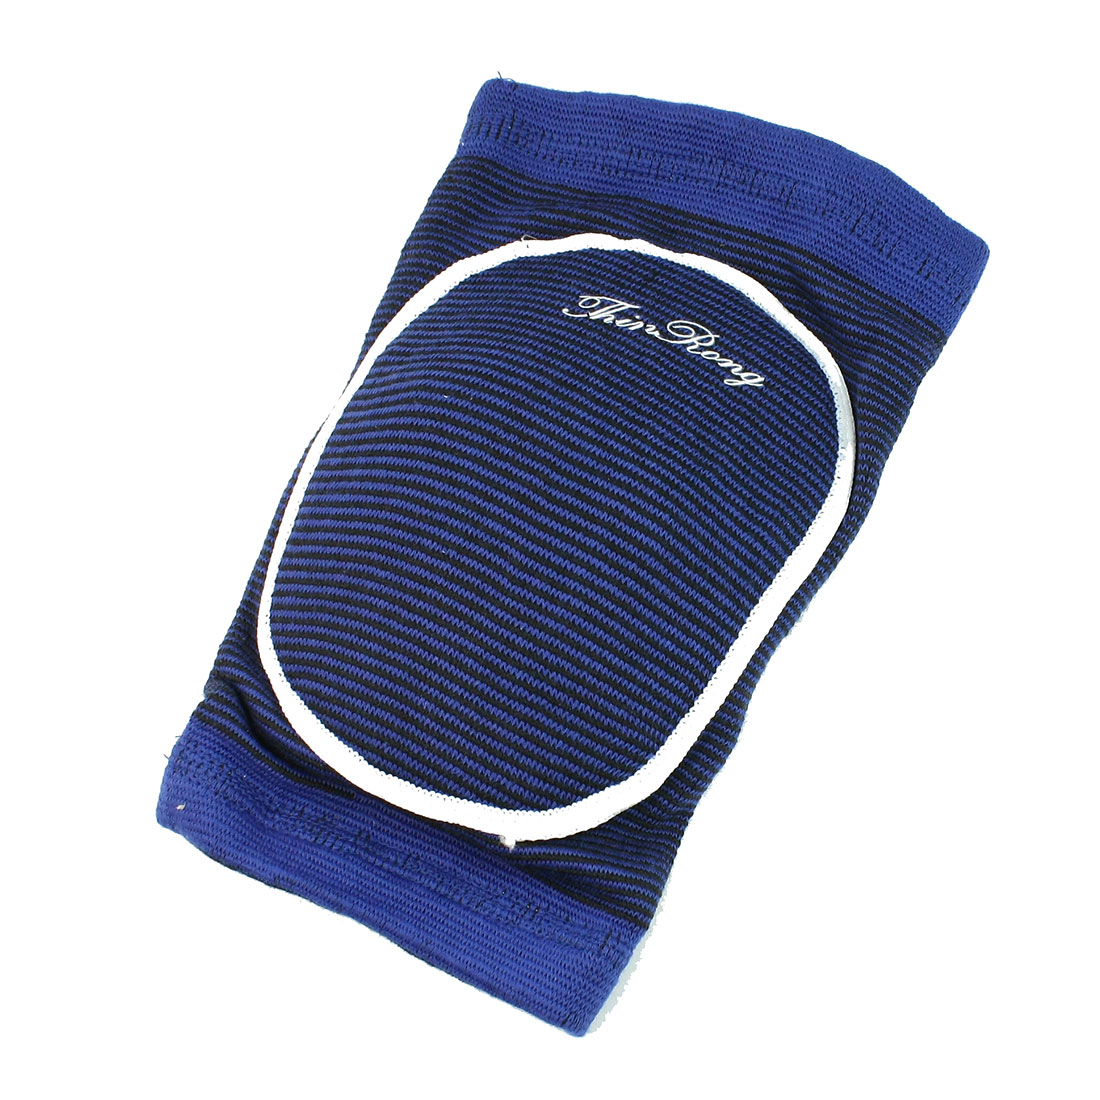 Exercise Gym Black Textured Stripe Pattern Stretchy Knee Support Blue